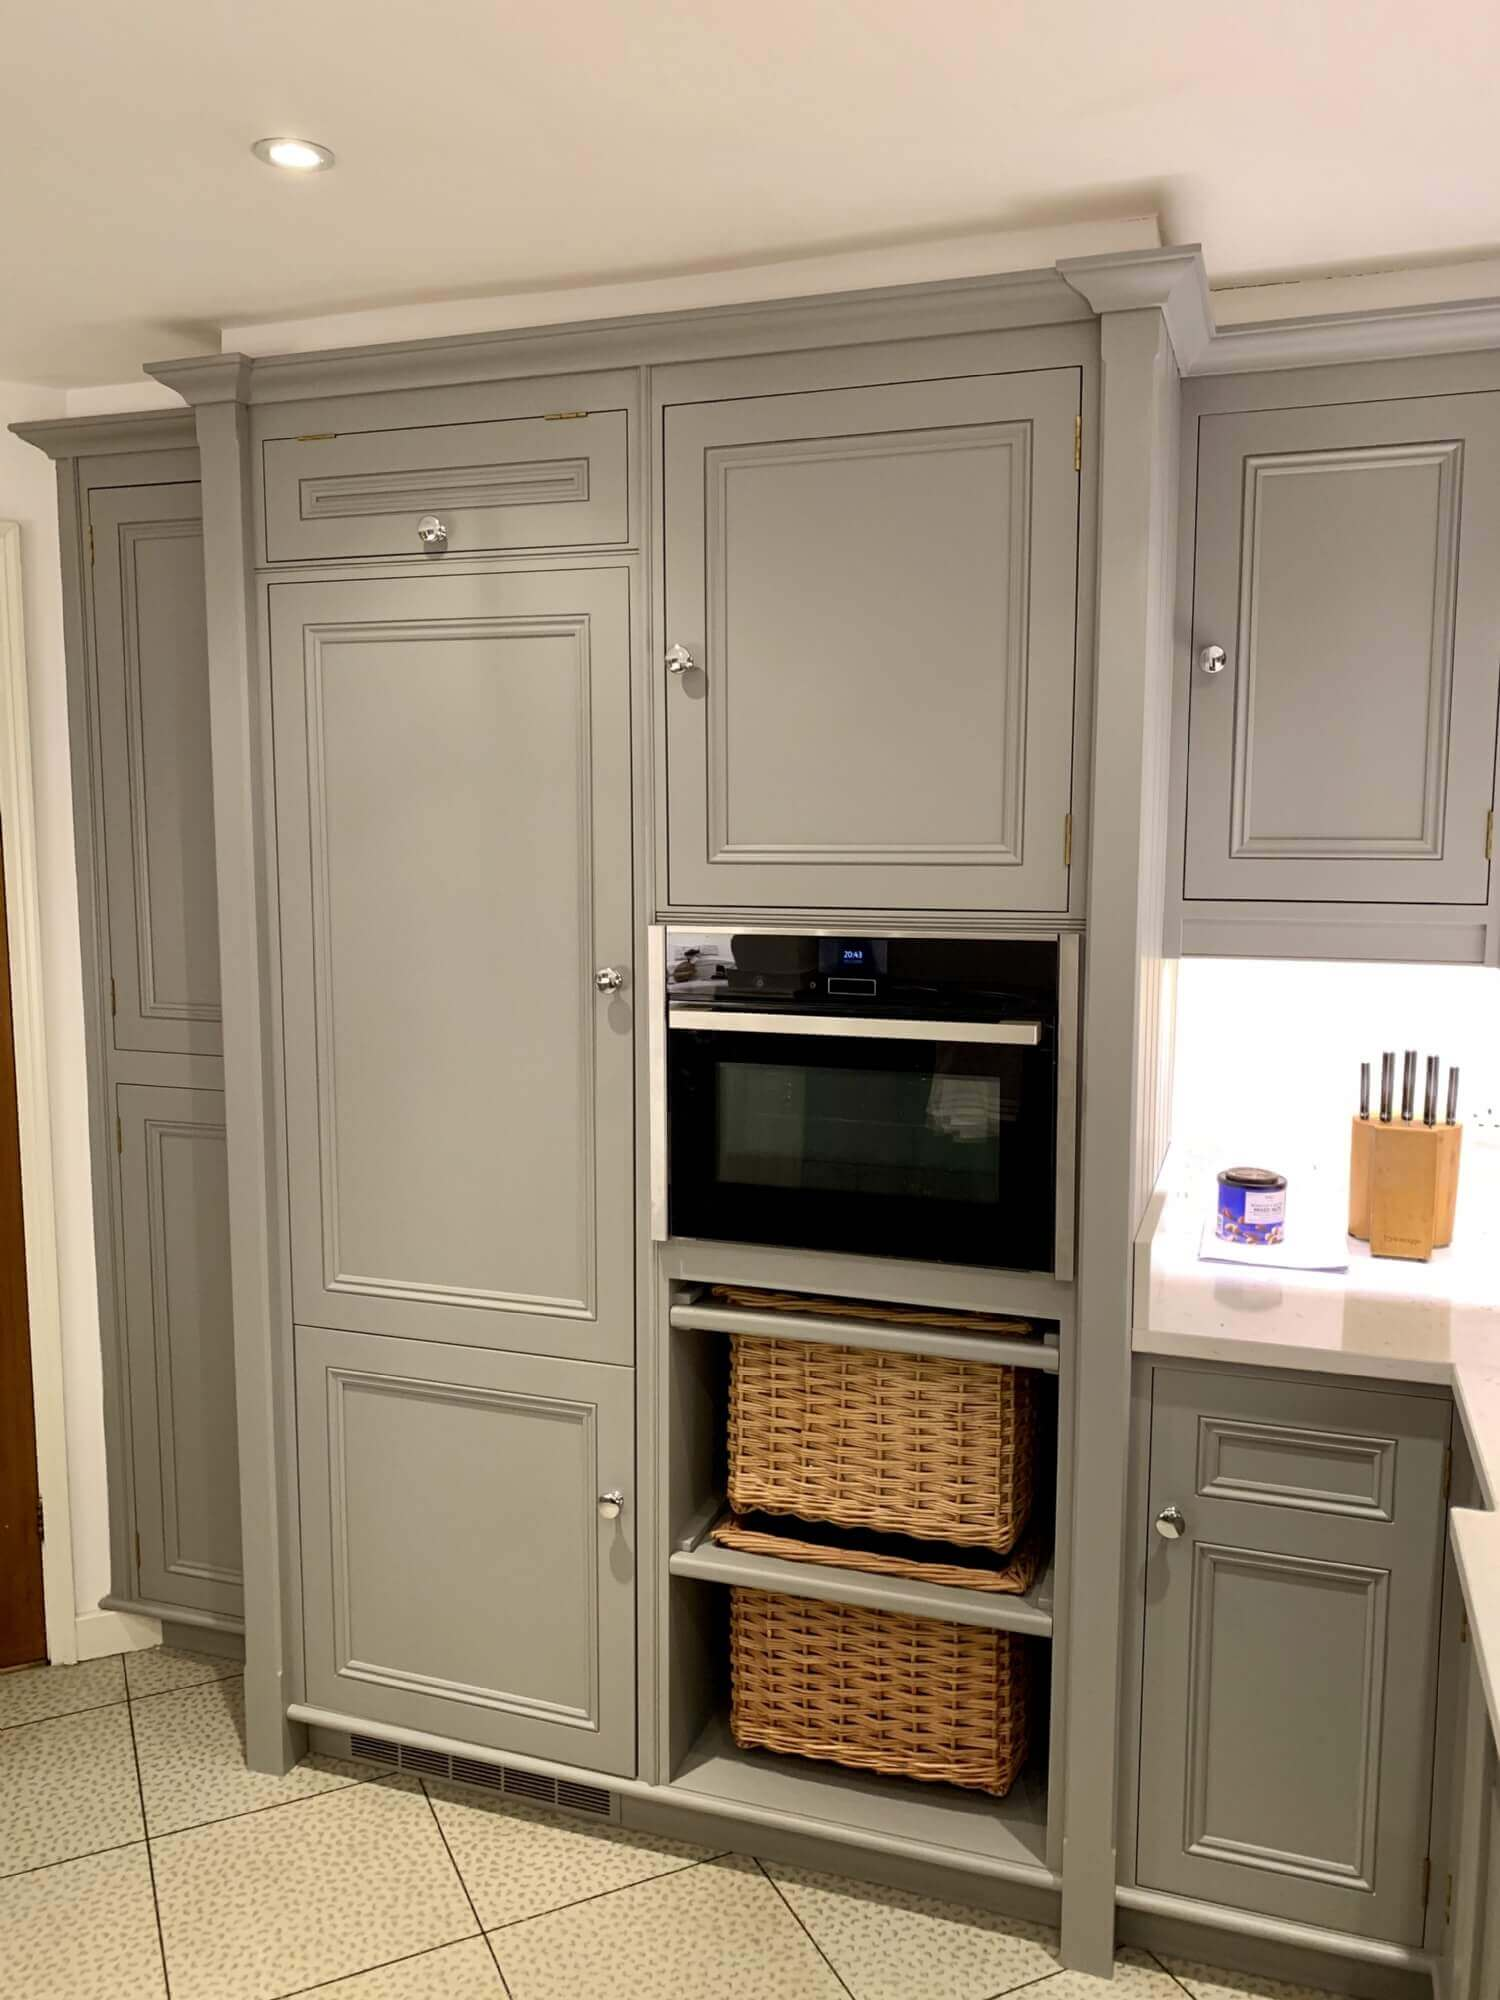 Diy Sos Kitchen Design Hand Painted Kitchens Suffolk Norfolk Cambridgeshire Essex Fx